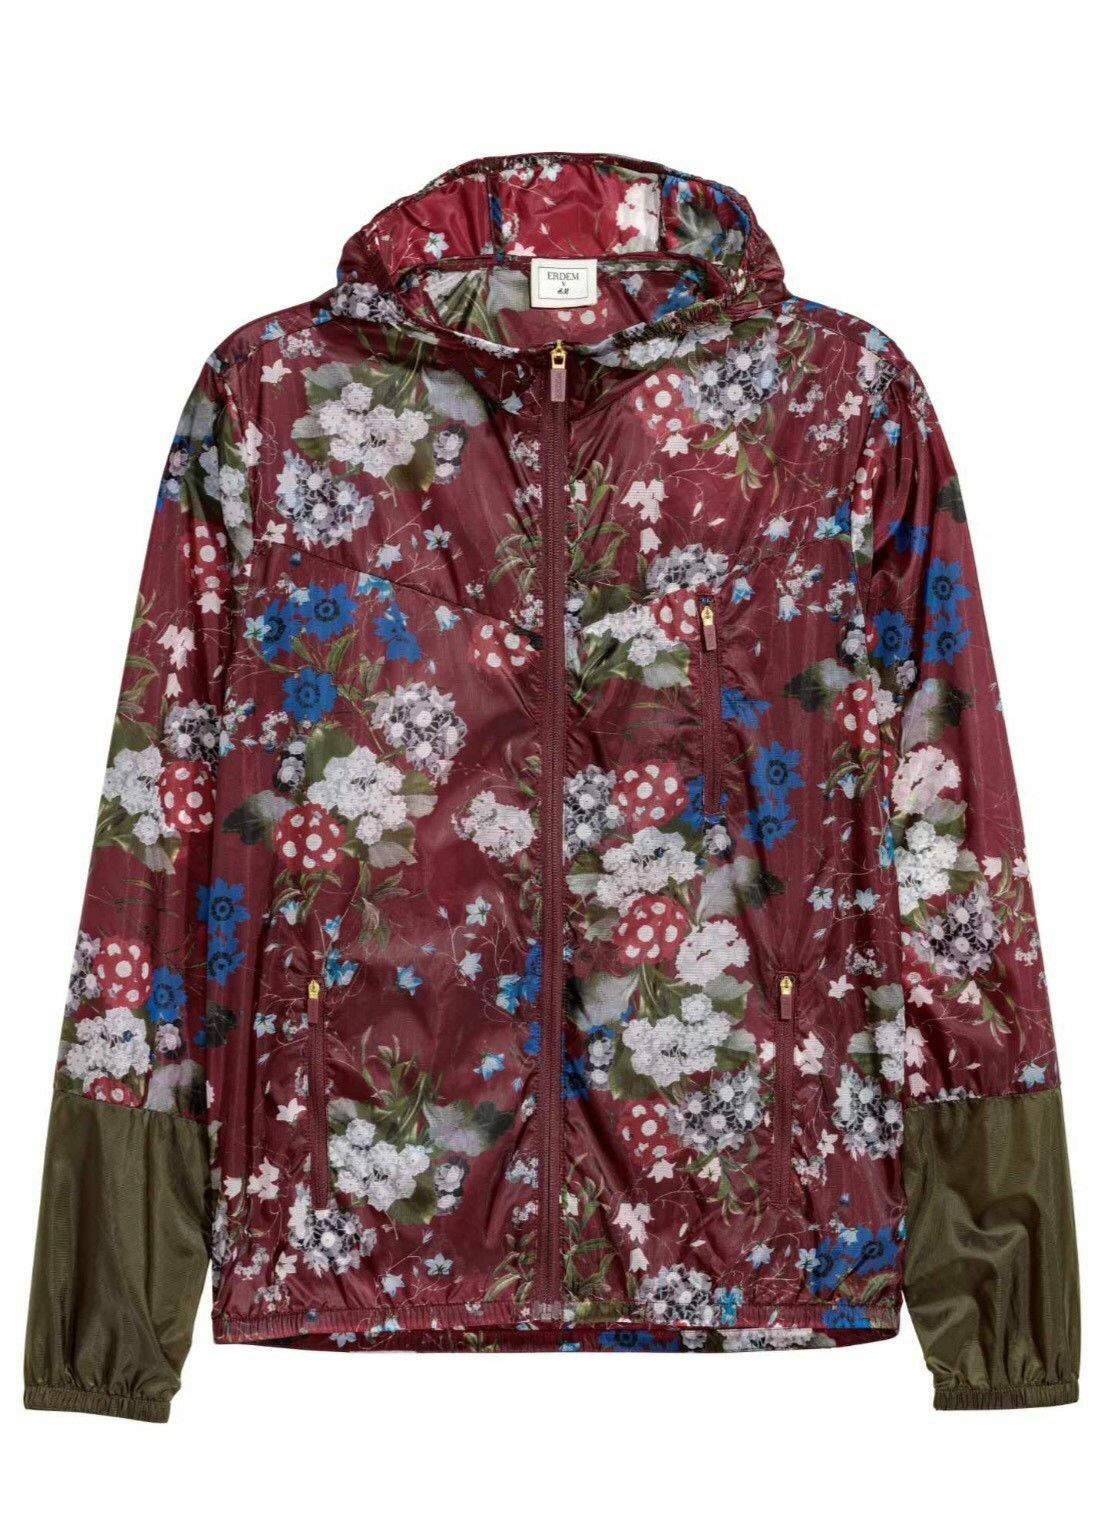 ERDEM X H&M Floral-patterned Nylon Windbreaker Size M